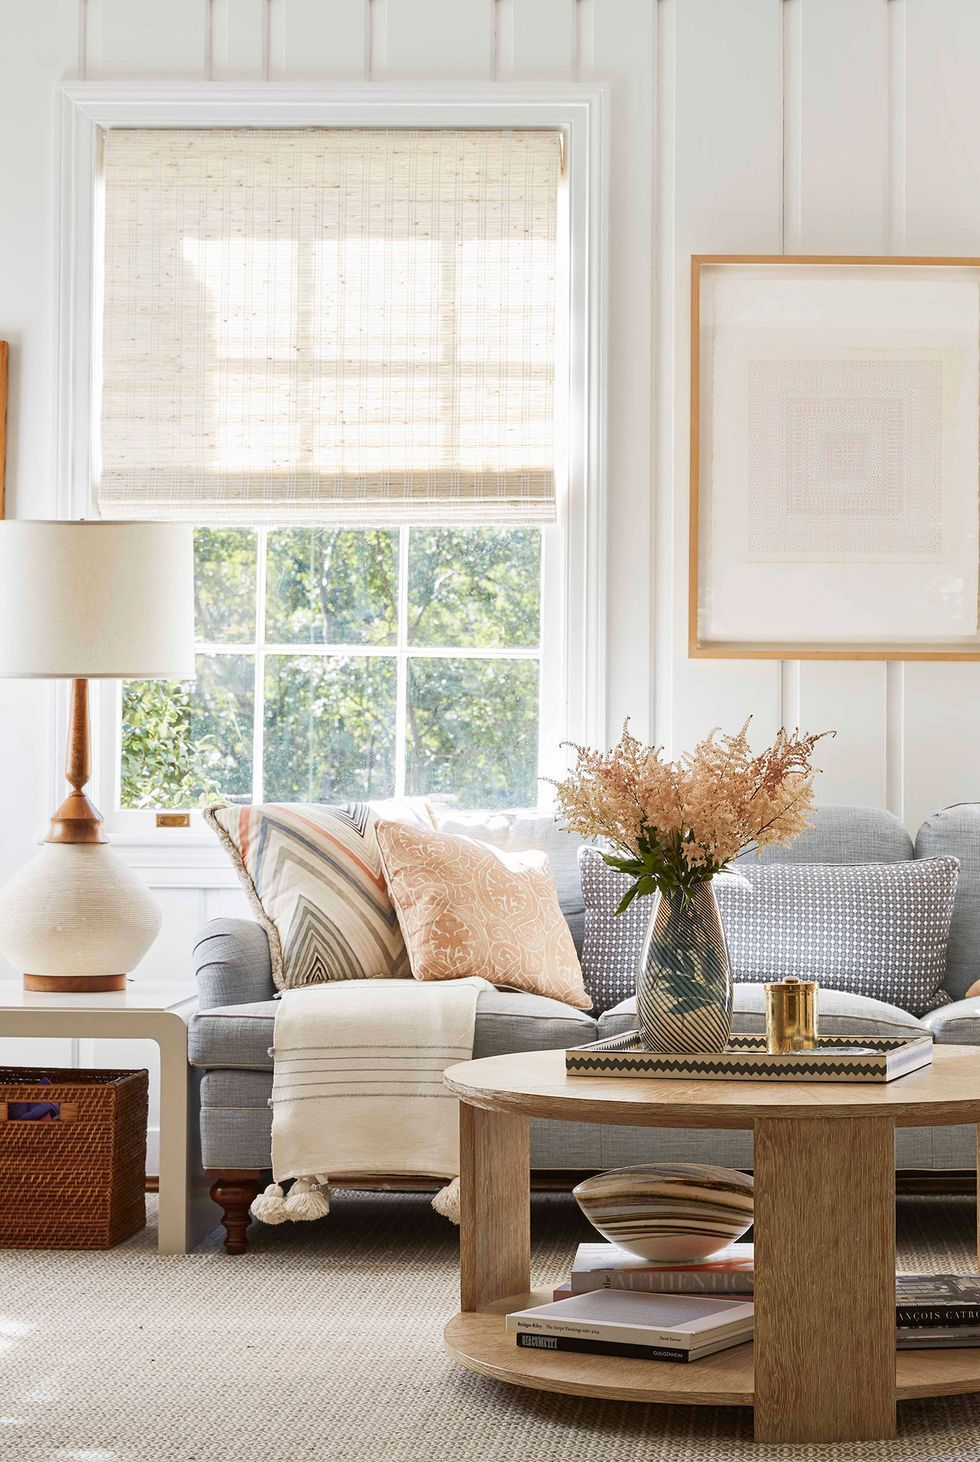 17 Best Small Living Room Ideas - How to Decorate a Small ... on Small Living Room Decor Ideas  id=95671